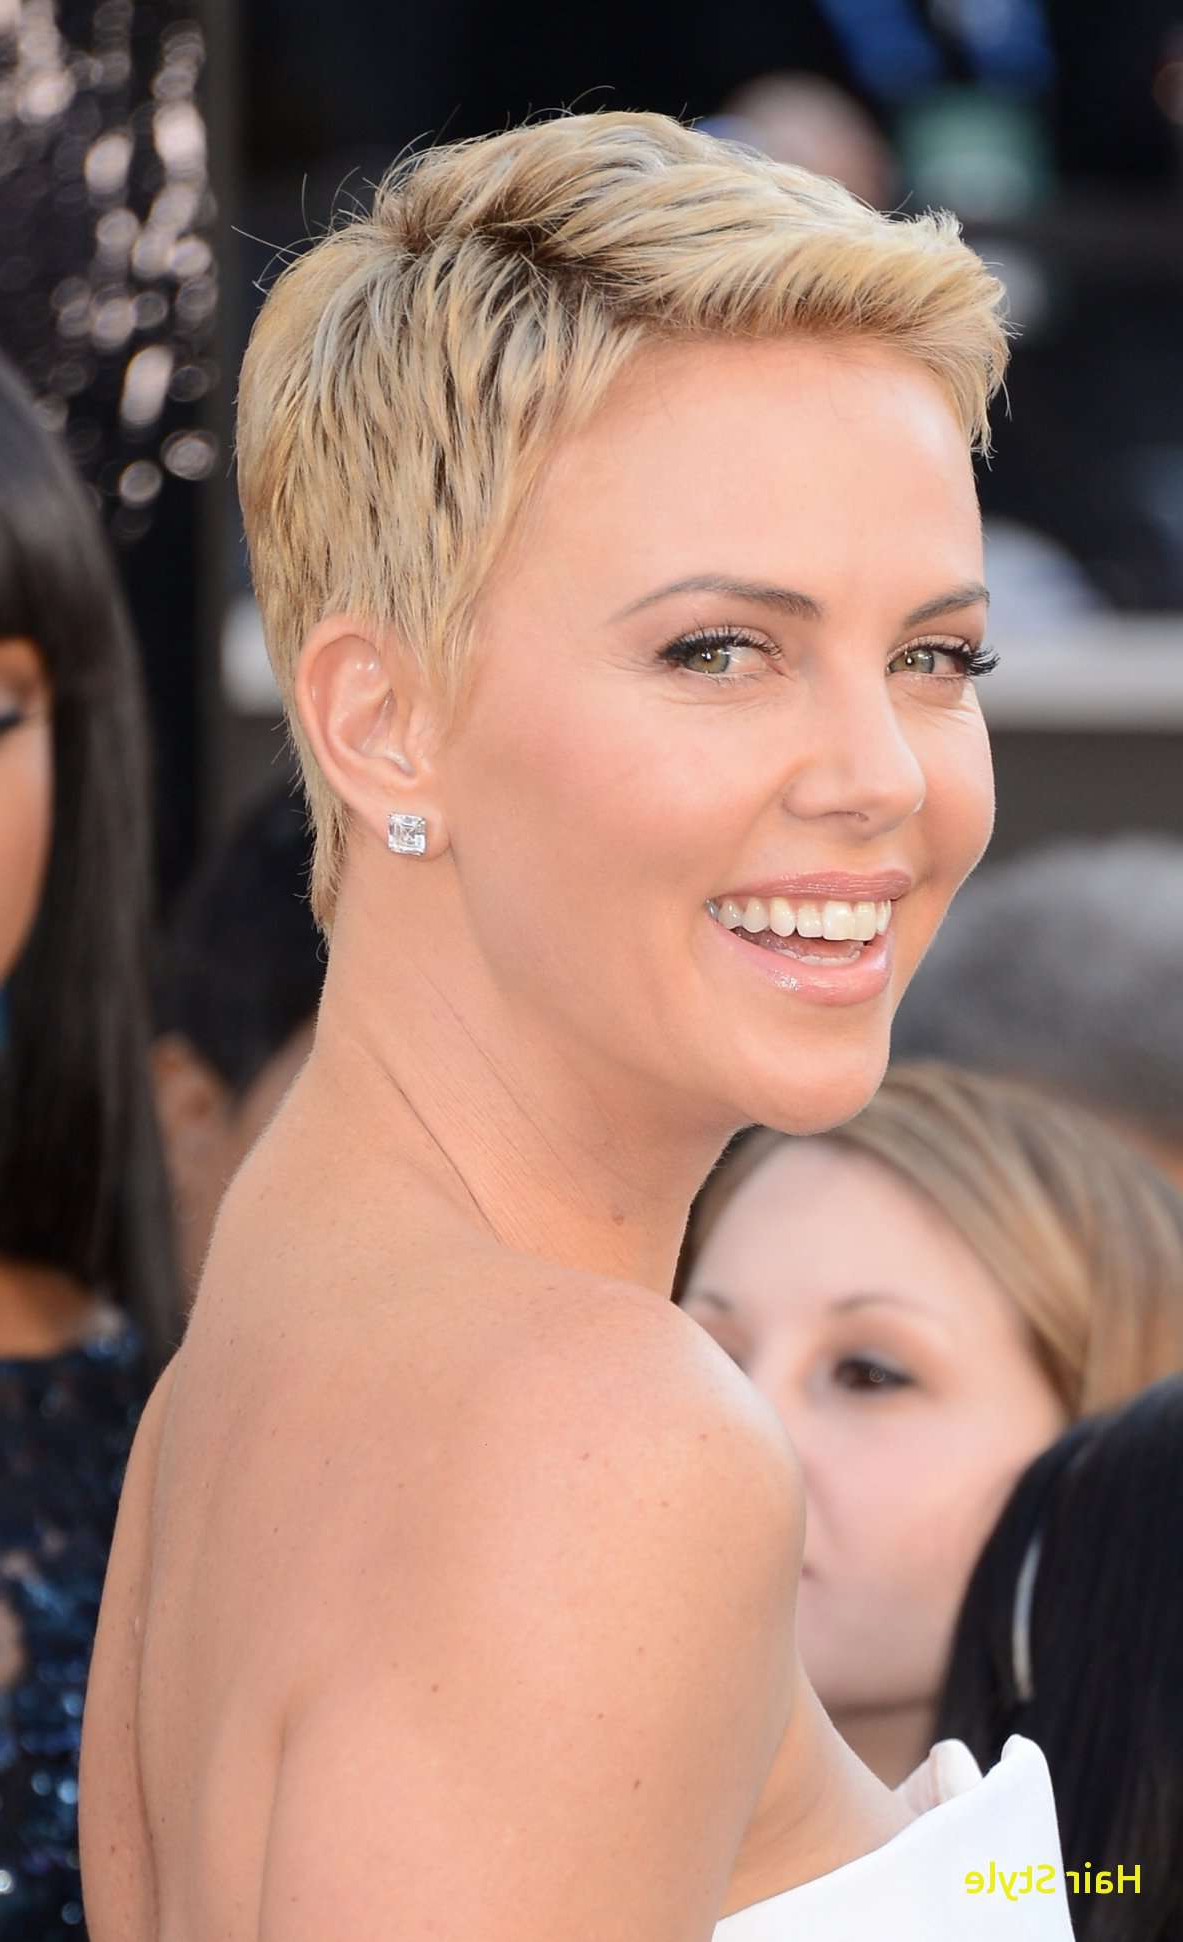 Short Haircuts For Oval Faces And Thin Hair Inspirational Pictures With Short Hairstyles For Fine Hair Oval Face (View 21 of 25)